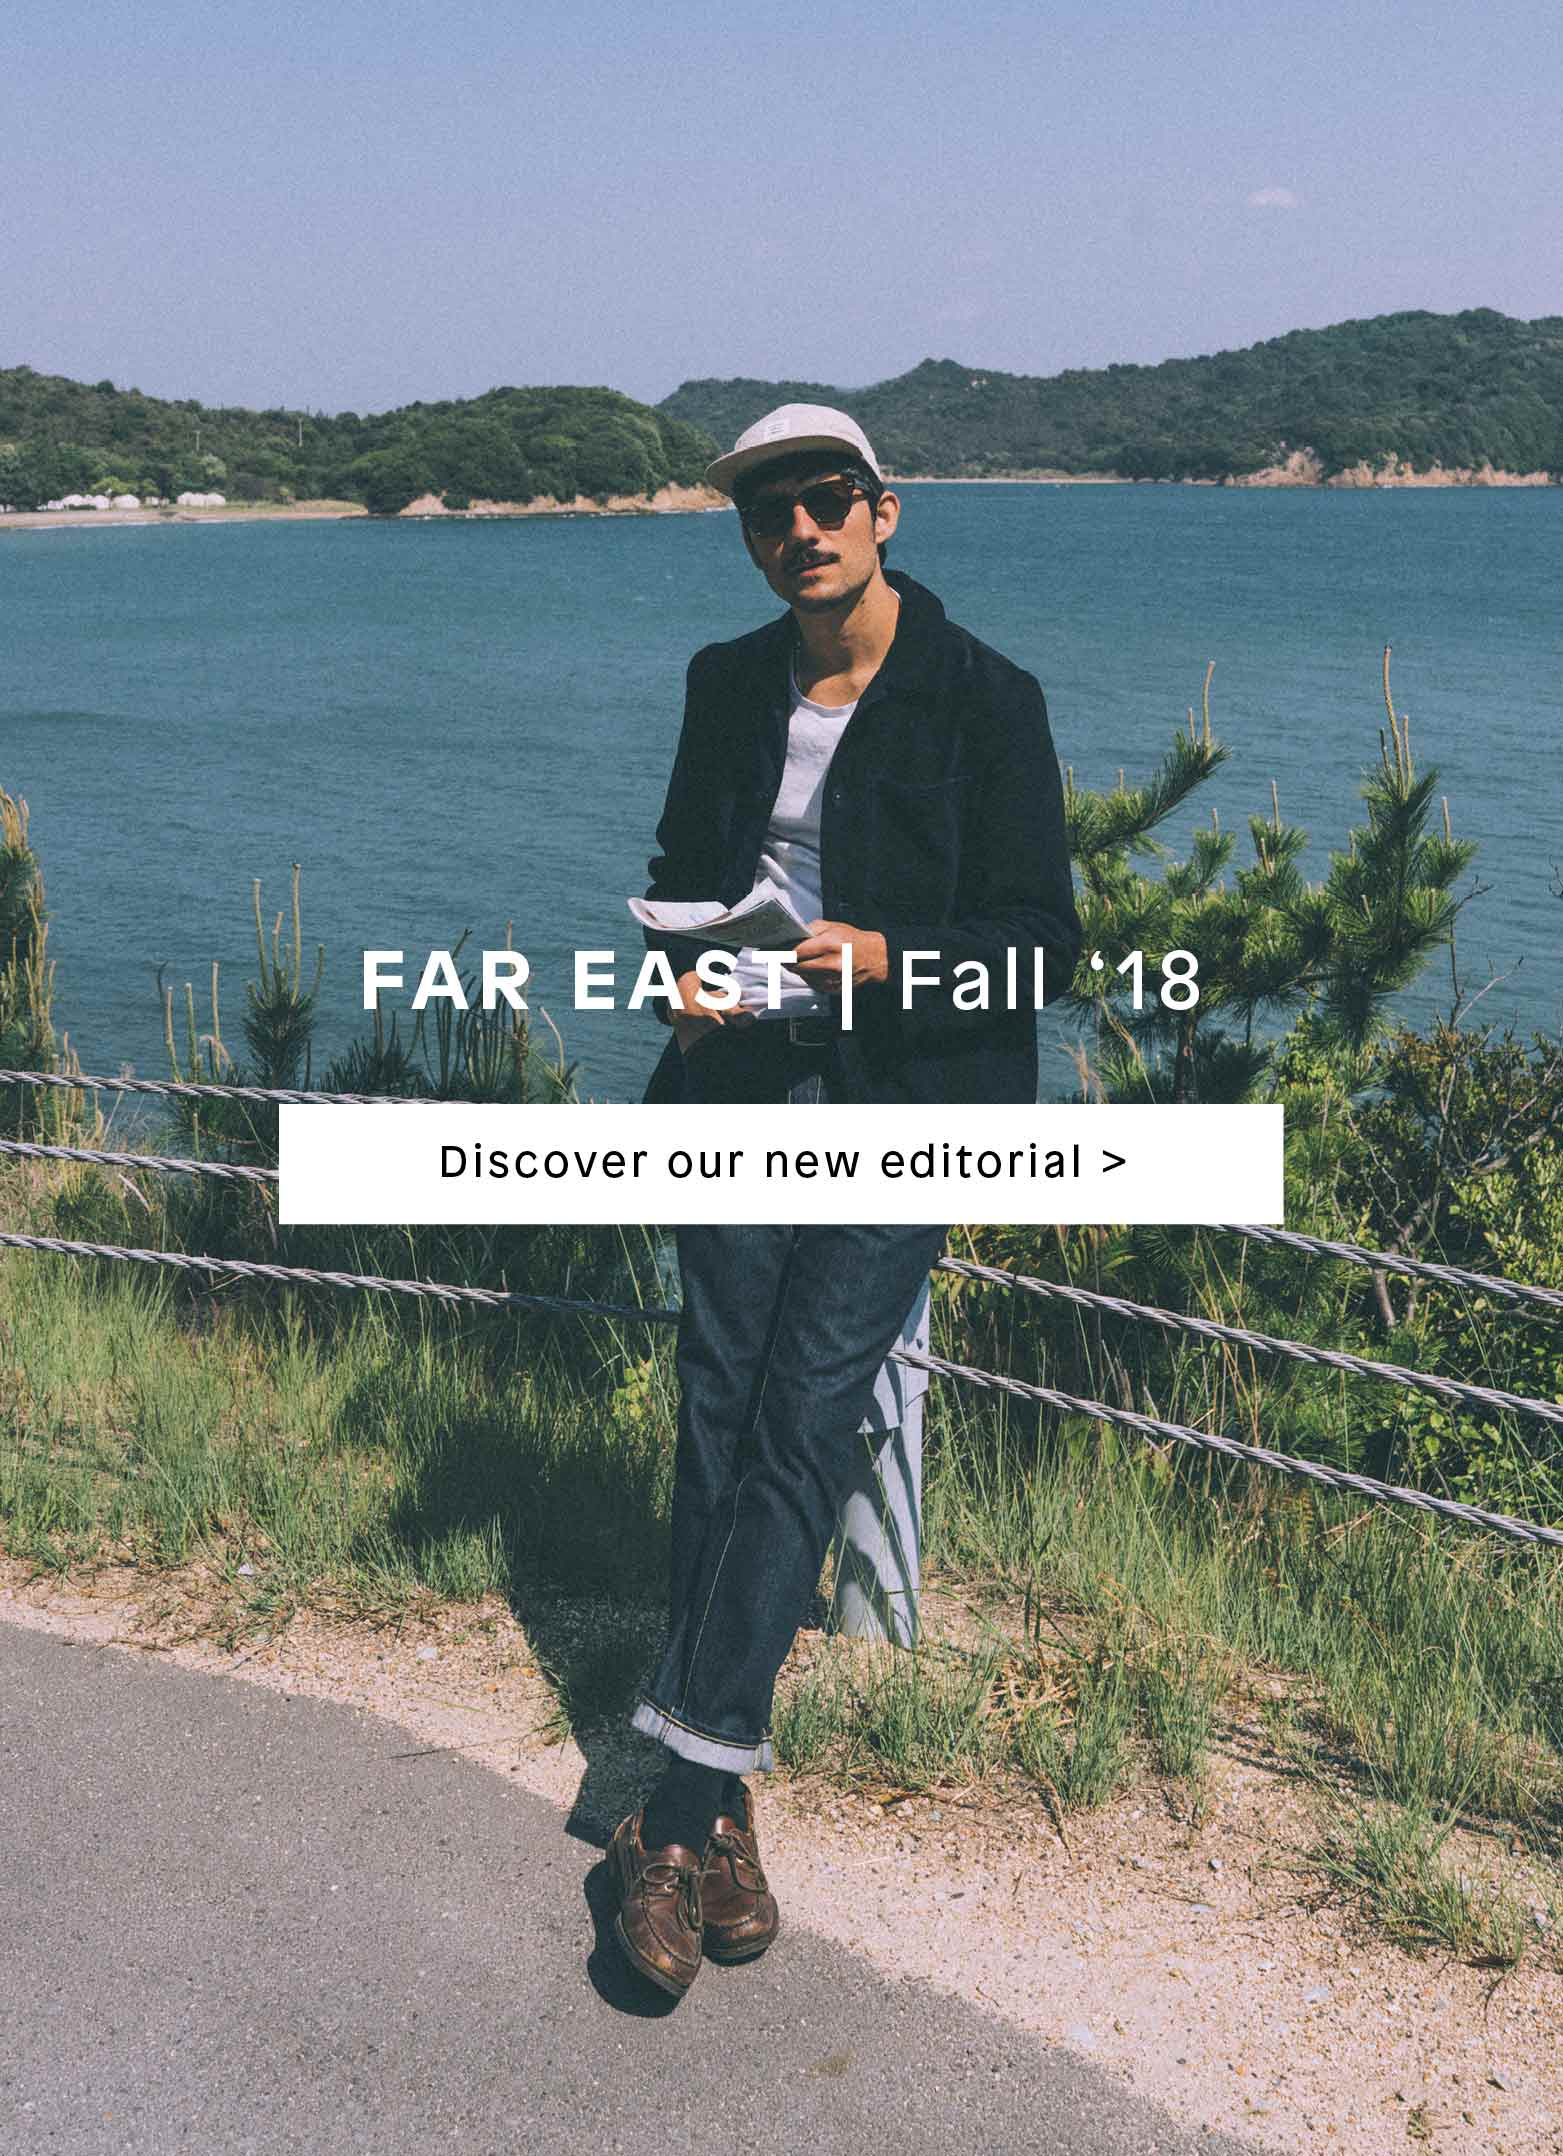 Japan Fall'18 Edito by Bellerose in collaboration with Coke Bartrina